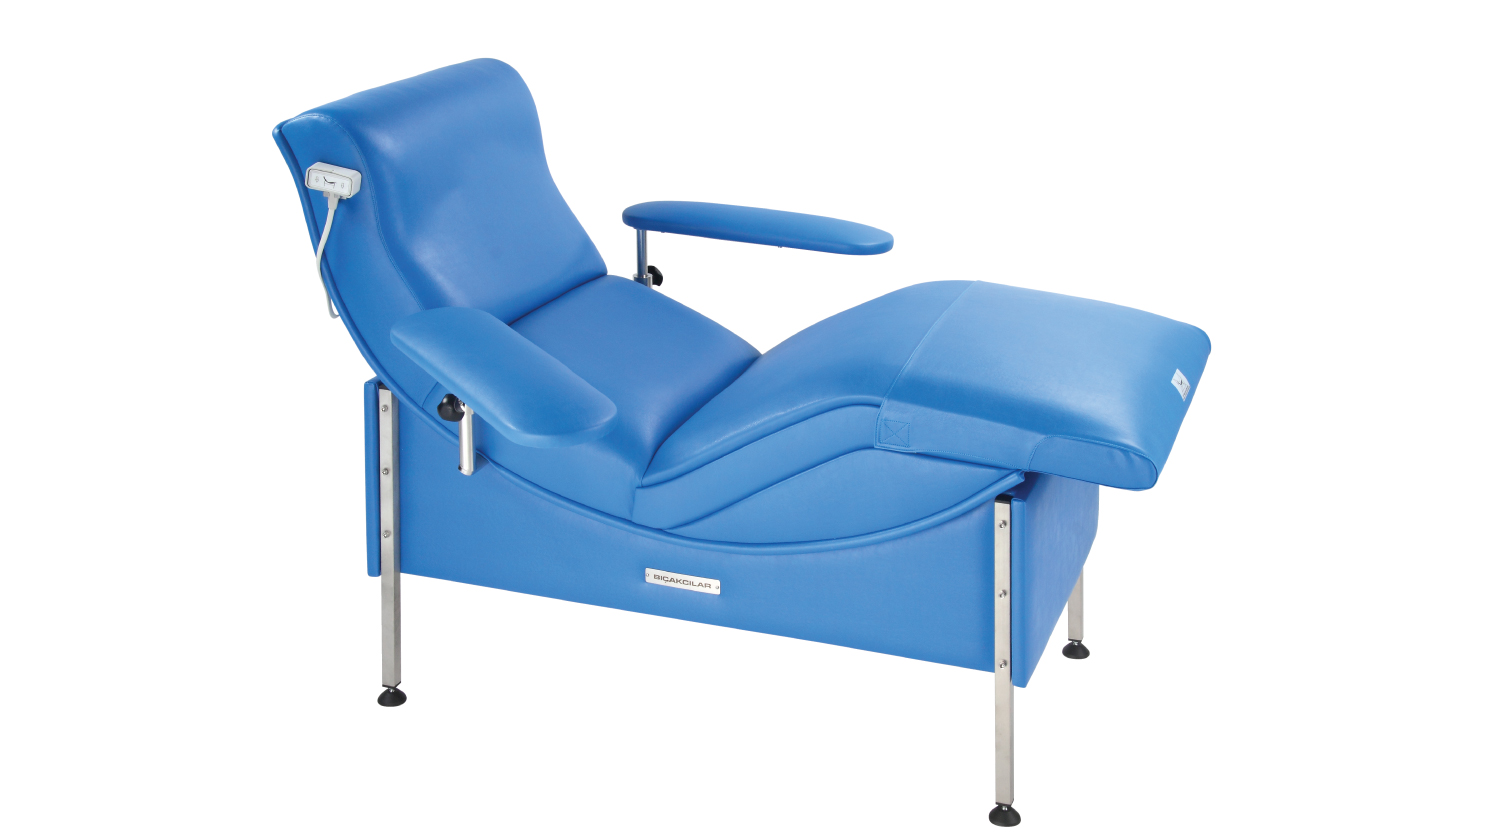 EXAMLINE 850 BLOOD DONOR CHAIR